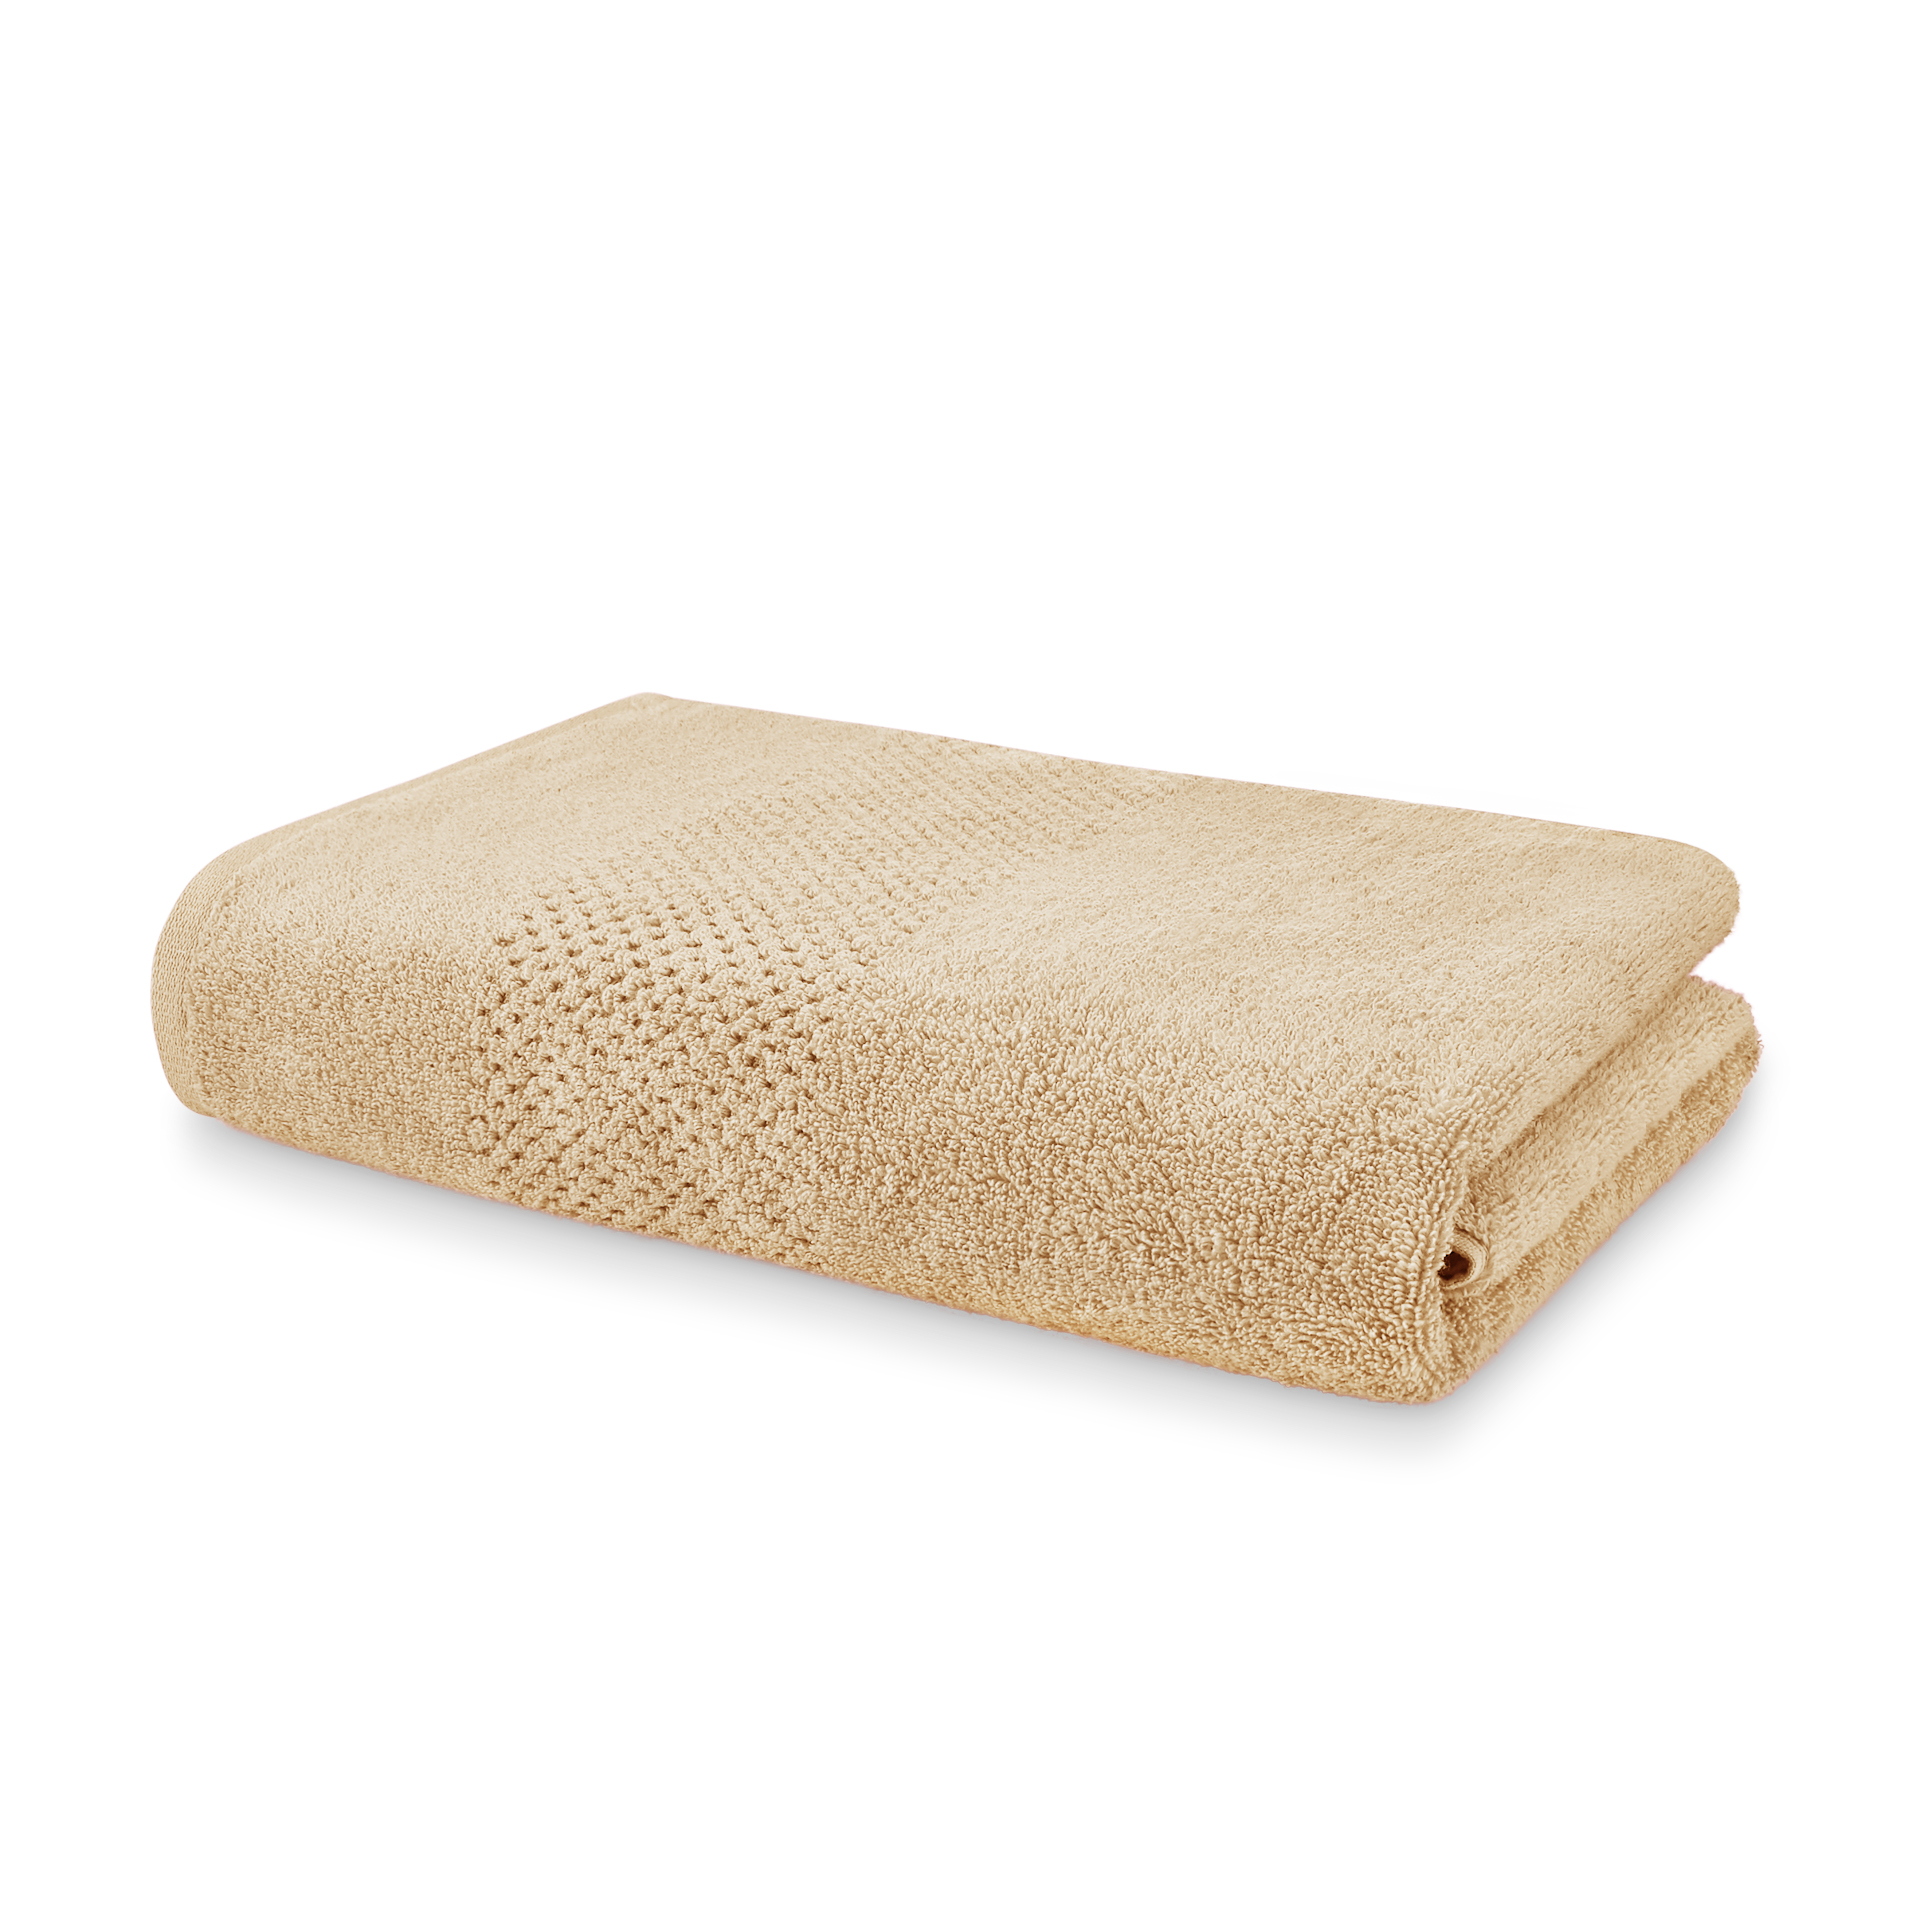 Spaces Atrium Cotton Double Bed Sheets in Camel Colour by Spaces